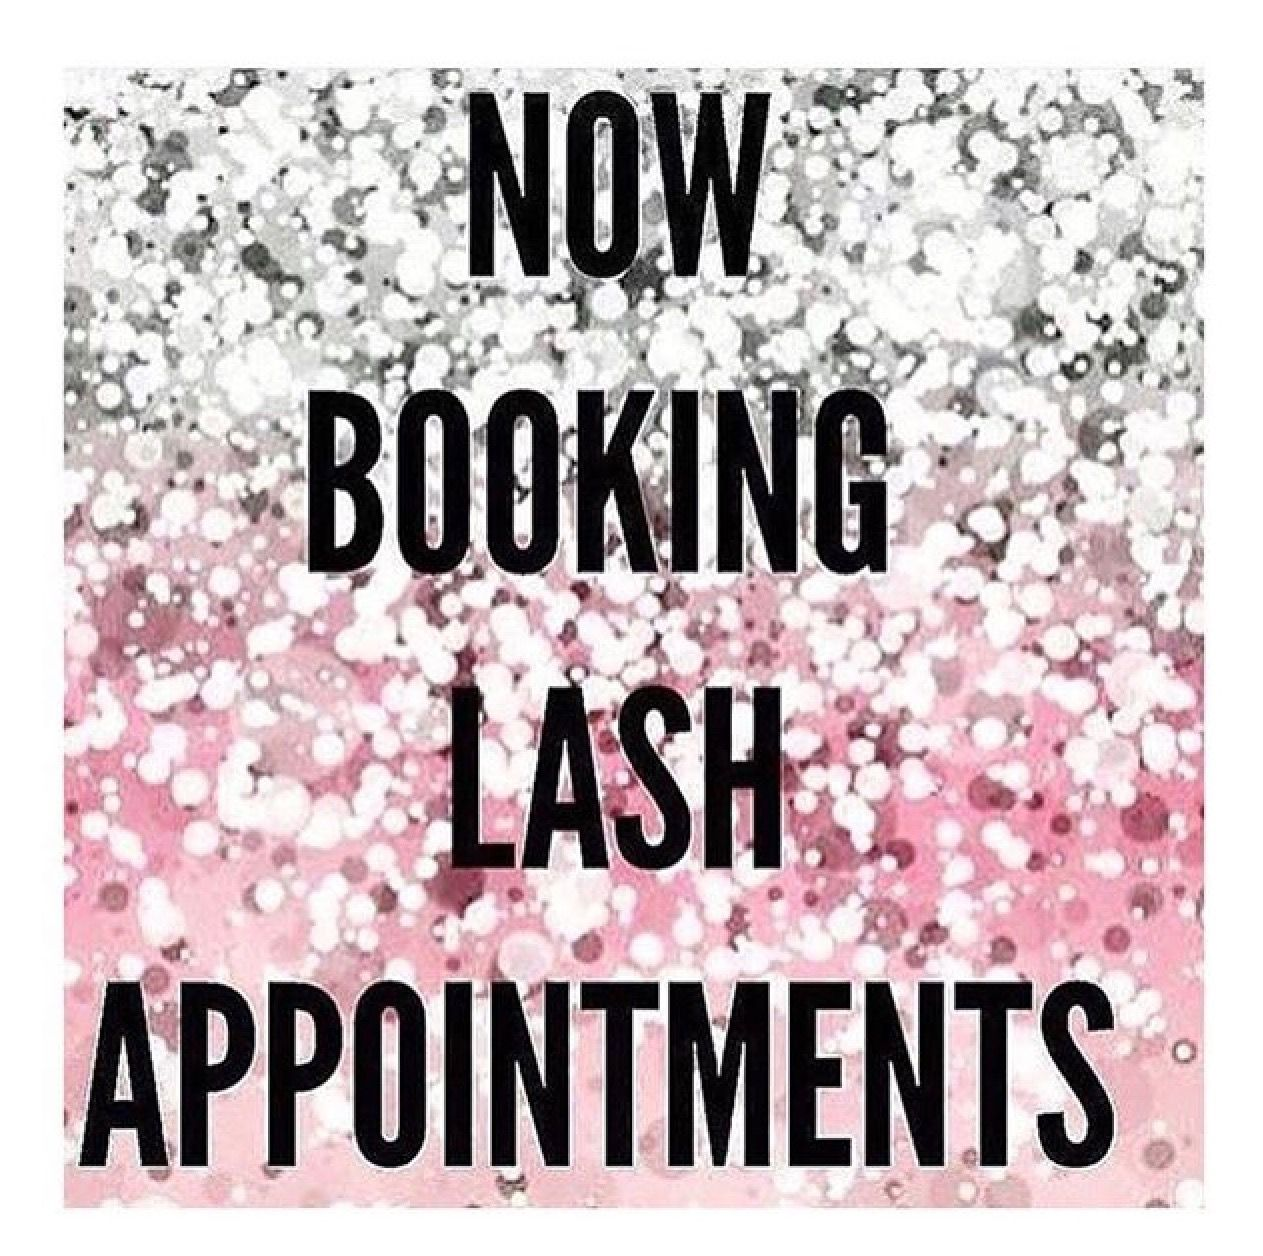 Now booking lash appointments eyelash extensions lashes